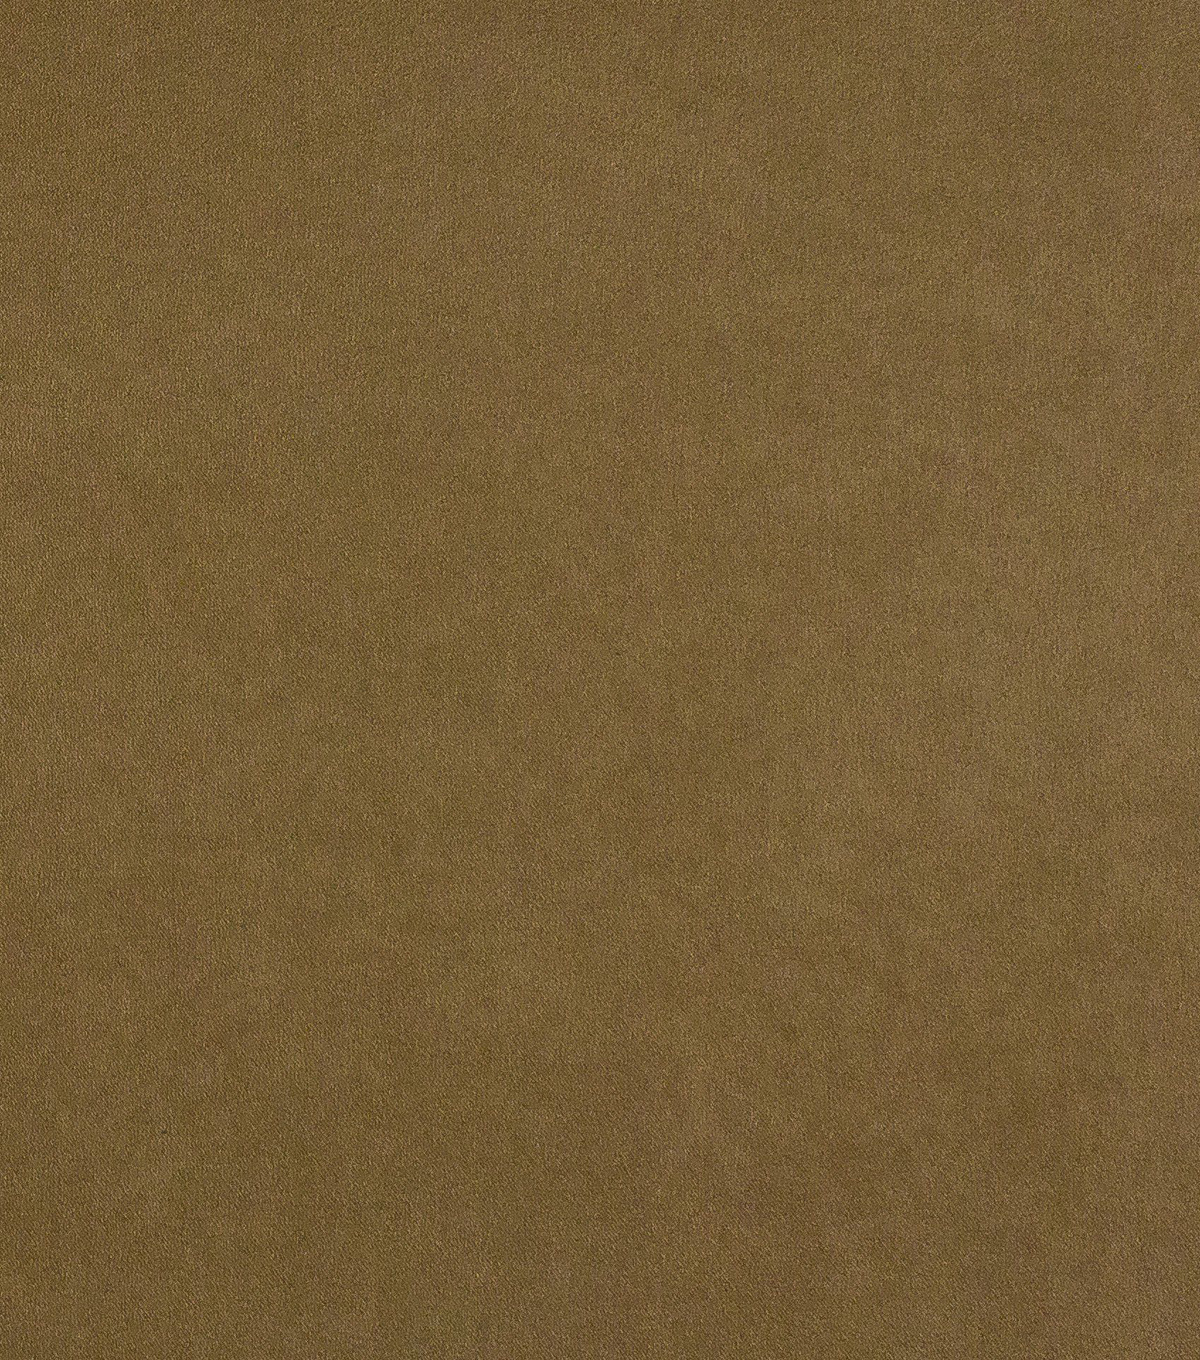 Home Decor 8\u0022x8\u0022 Fabric Swatch-Elite New Suede Wheat